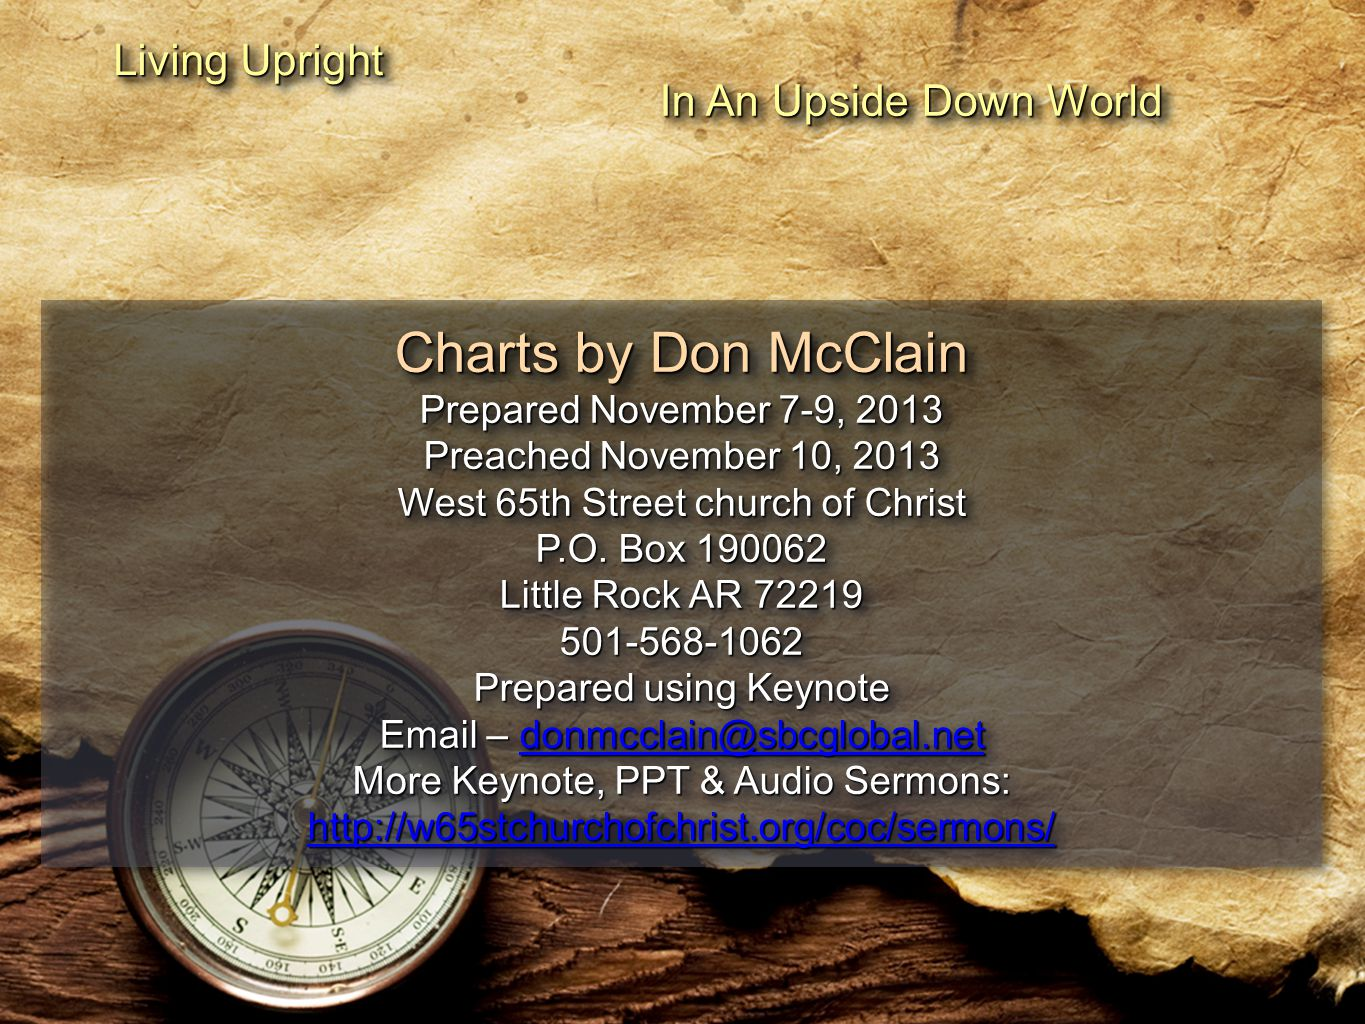 Charts by Don McClain Prepared November 7-9, 2013 Preached November 10, 2013 West 65th Street church of Christ P.O. Box 190062 Little Rock AR 72219 50